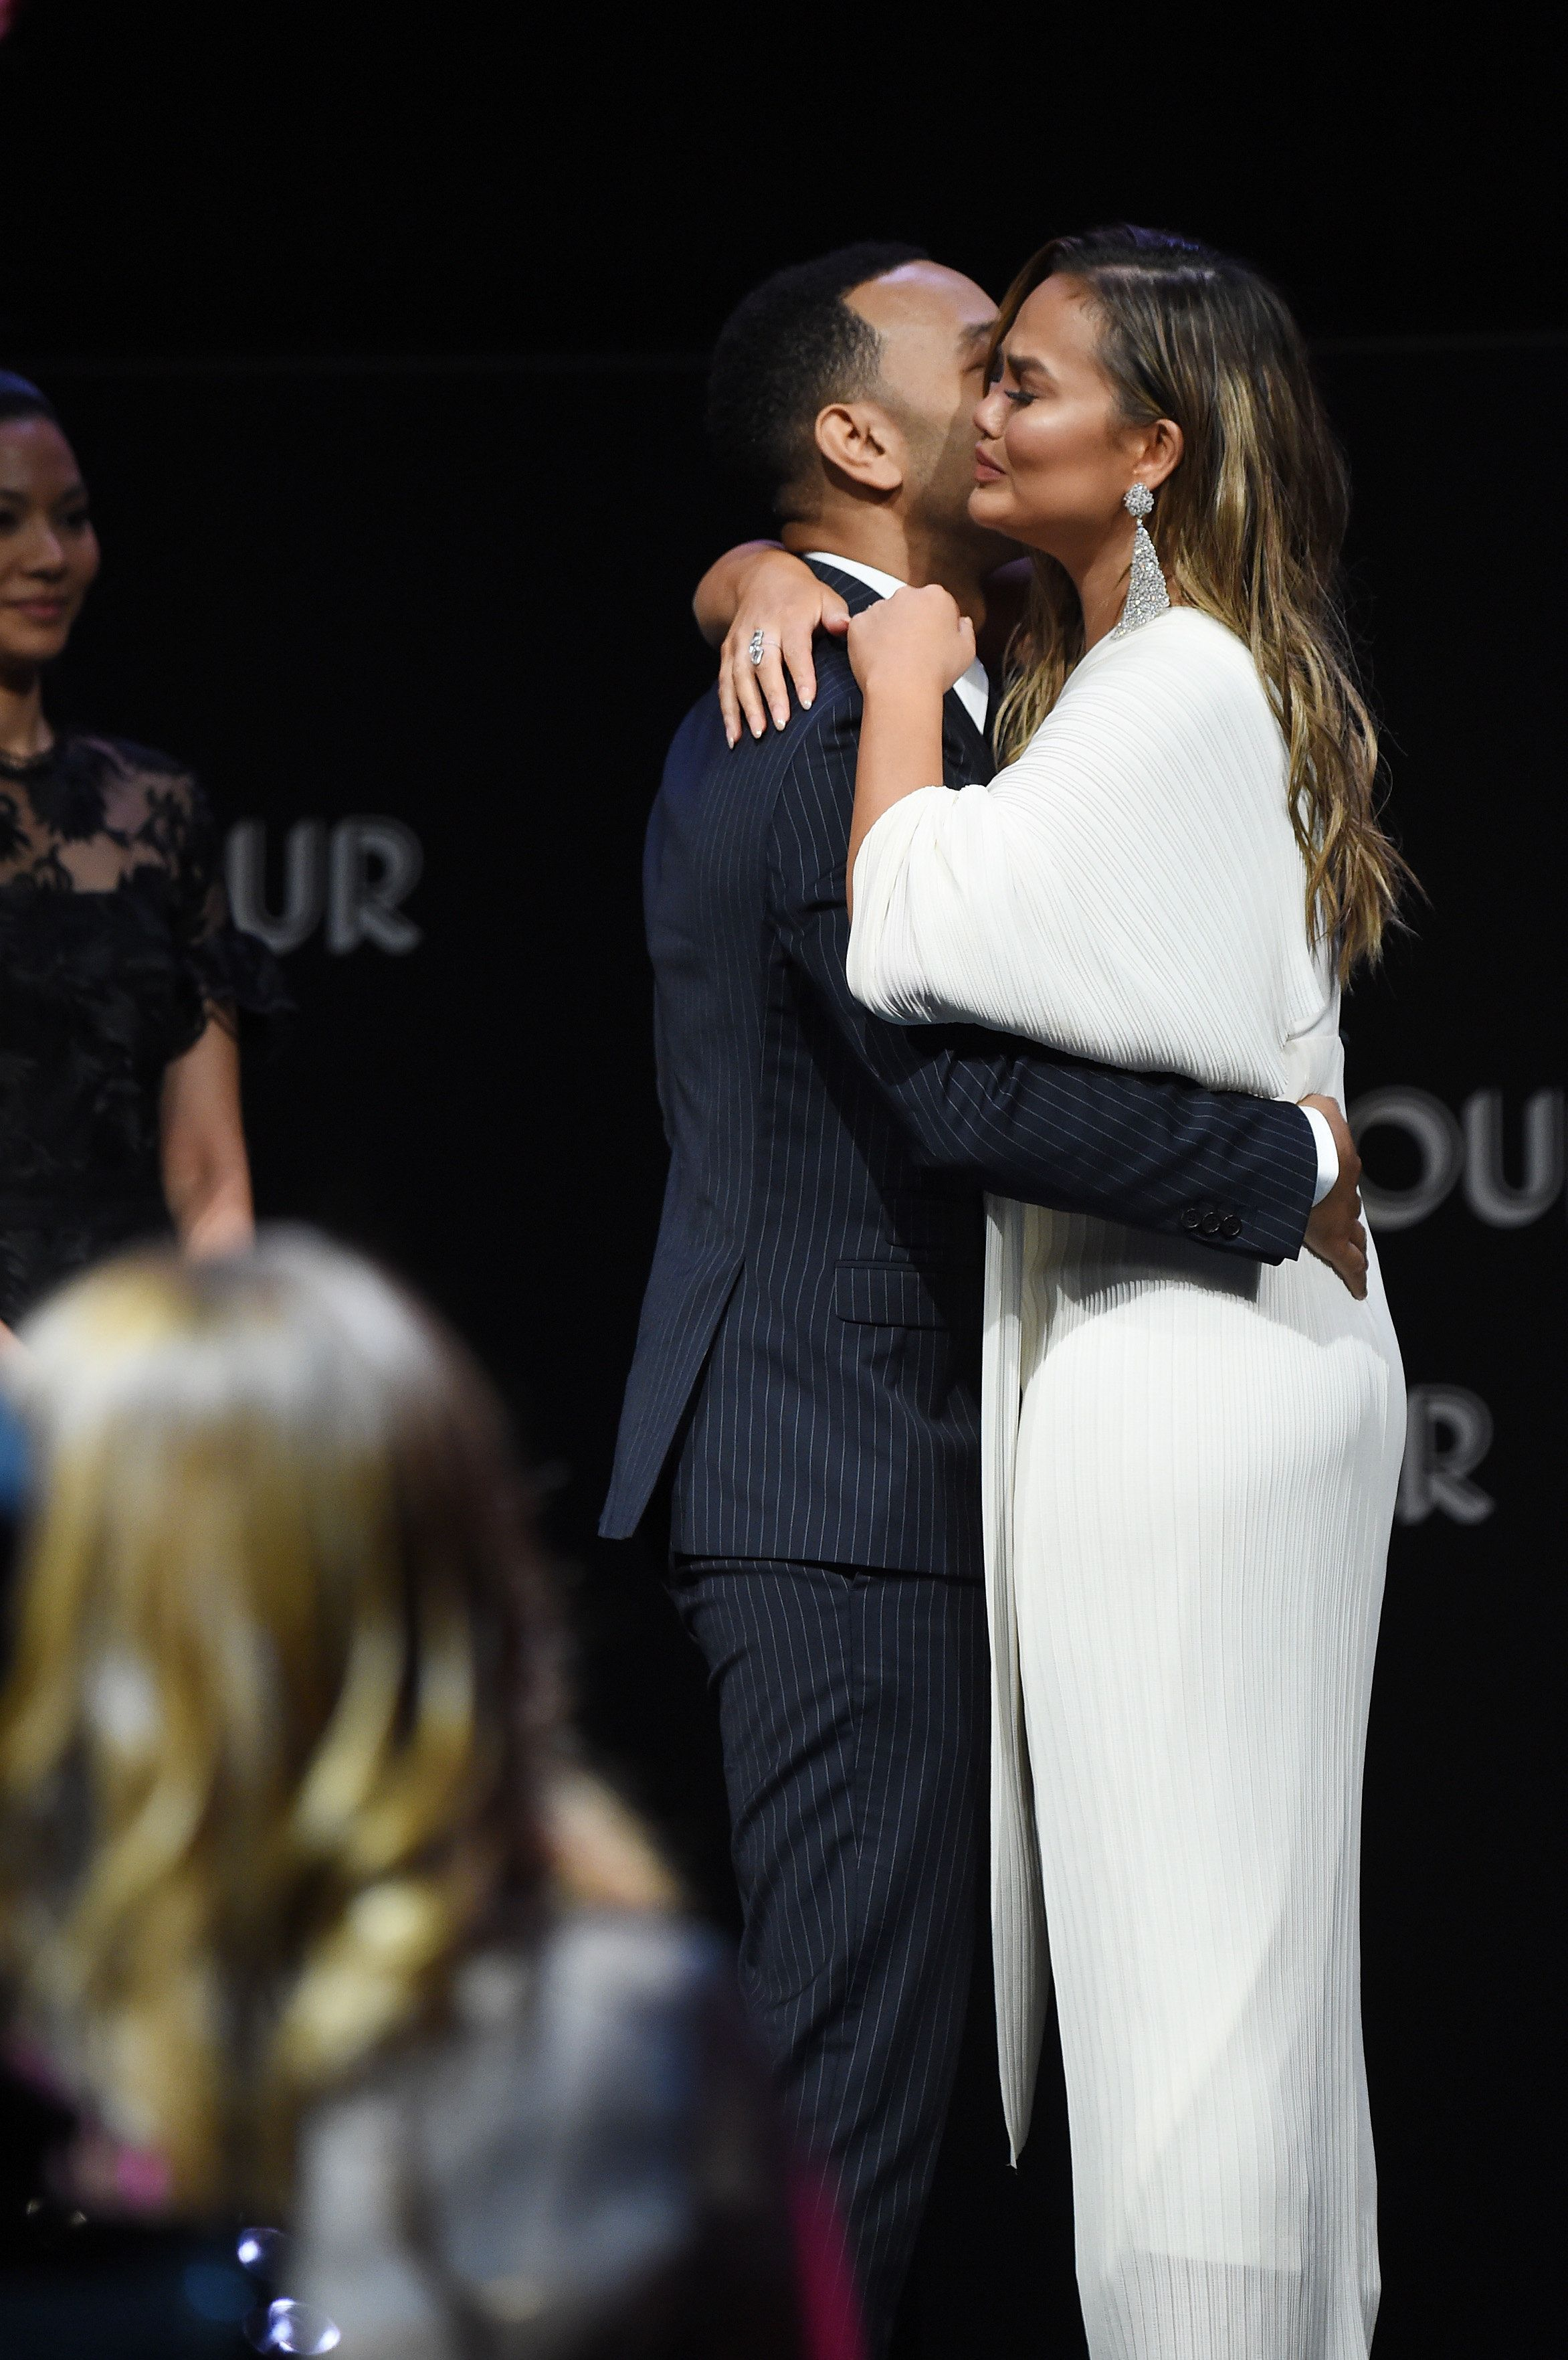 NEW YORK, NY - NOVEMBER 12:  John Legend introduces Chrissy Teigen onstage at the 2018 Glamour Women Of The Year Awards: Women Rise on November 12, 2018 in New York City.  (Photo by Jamie McCarthy/Getty Images for Glamour)